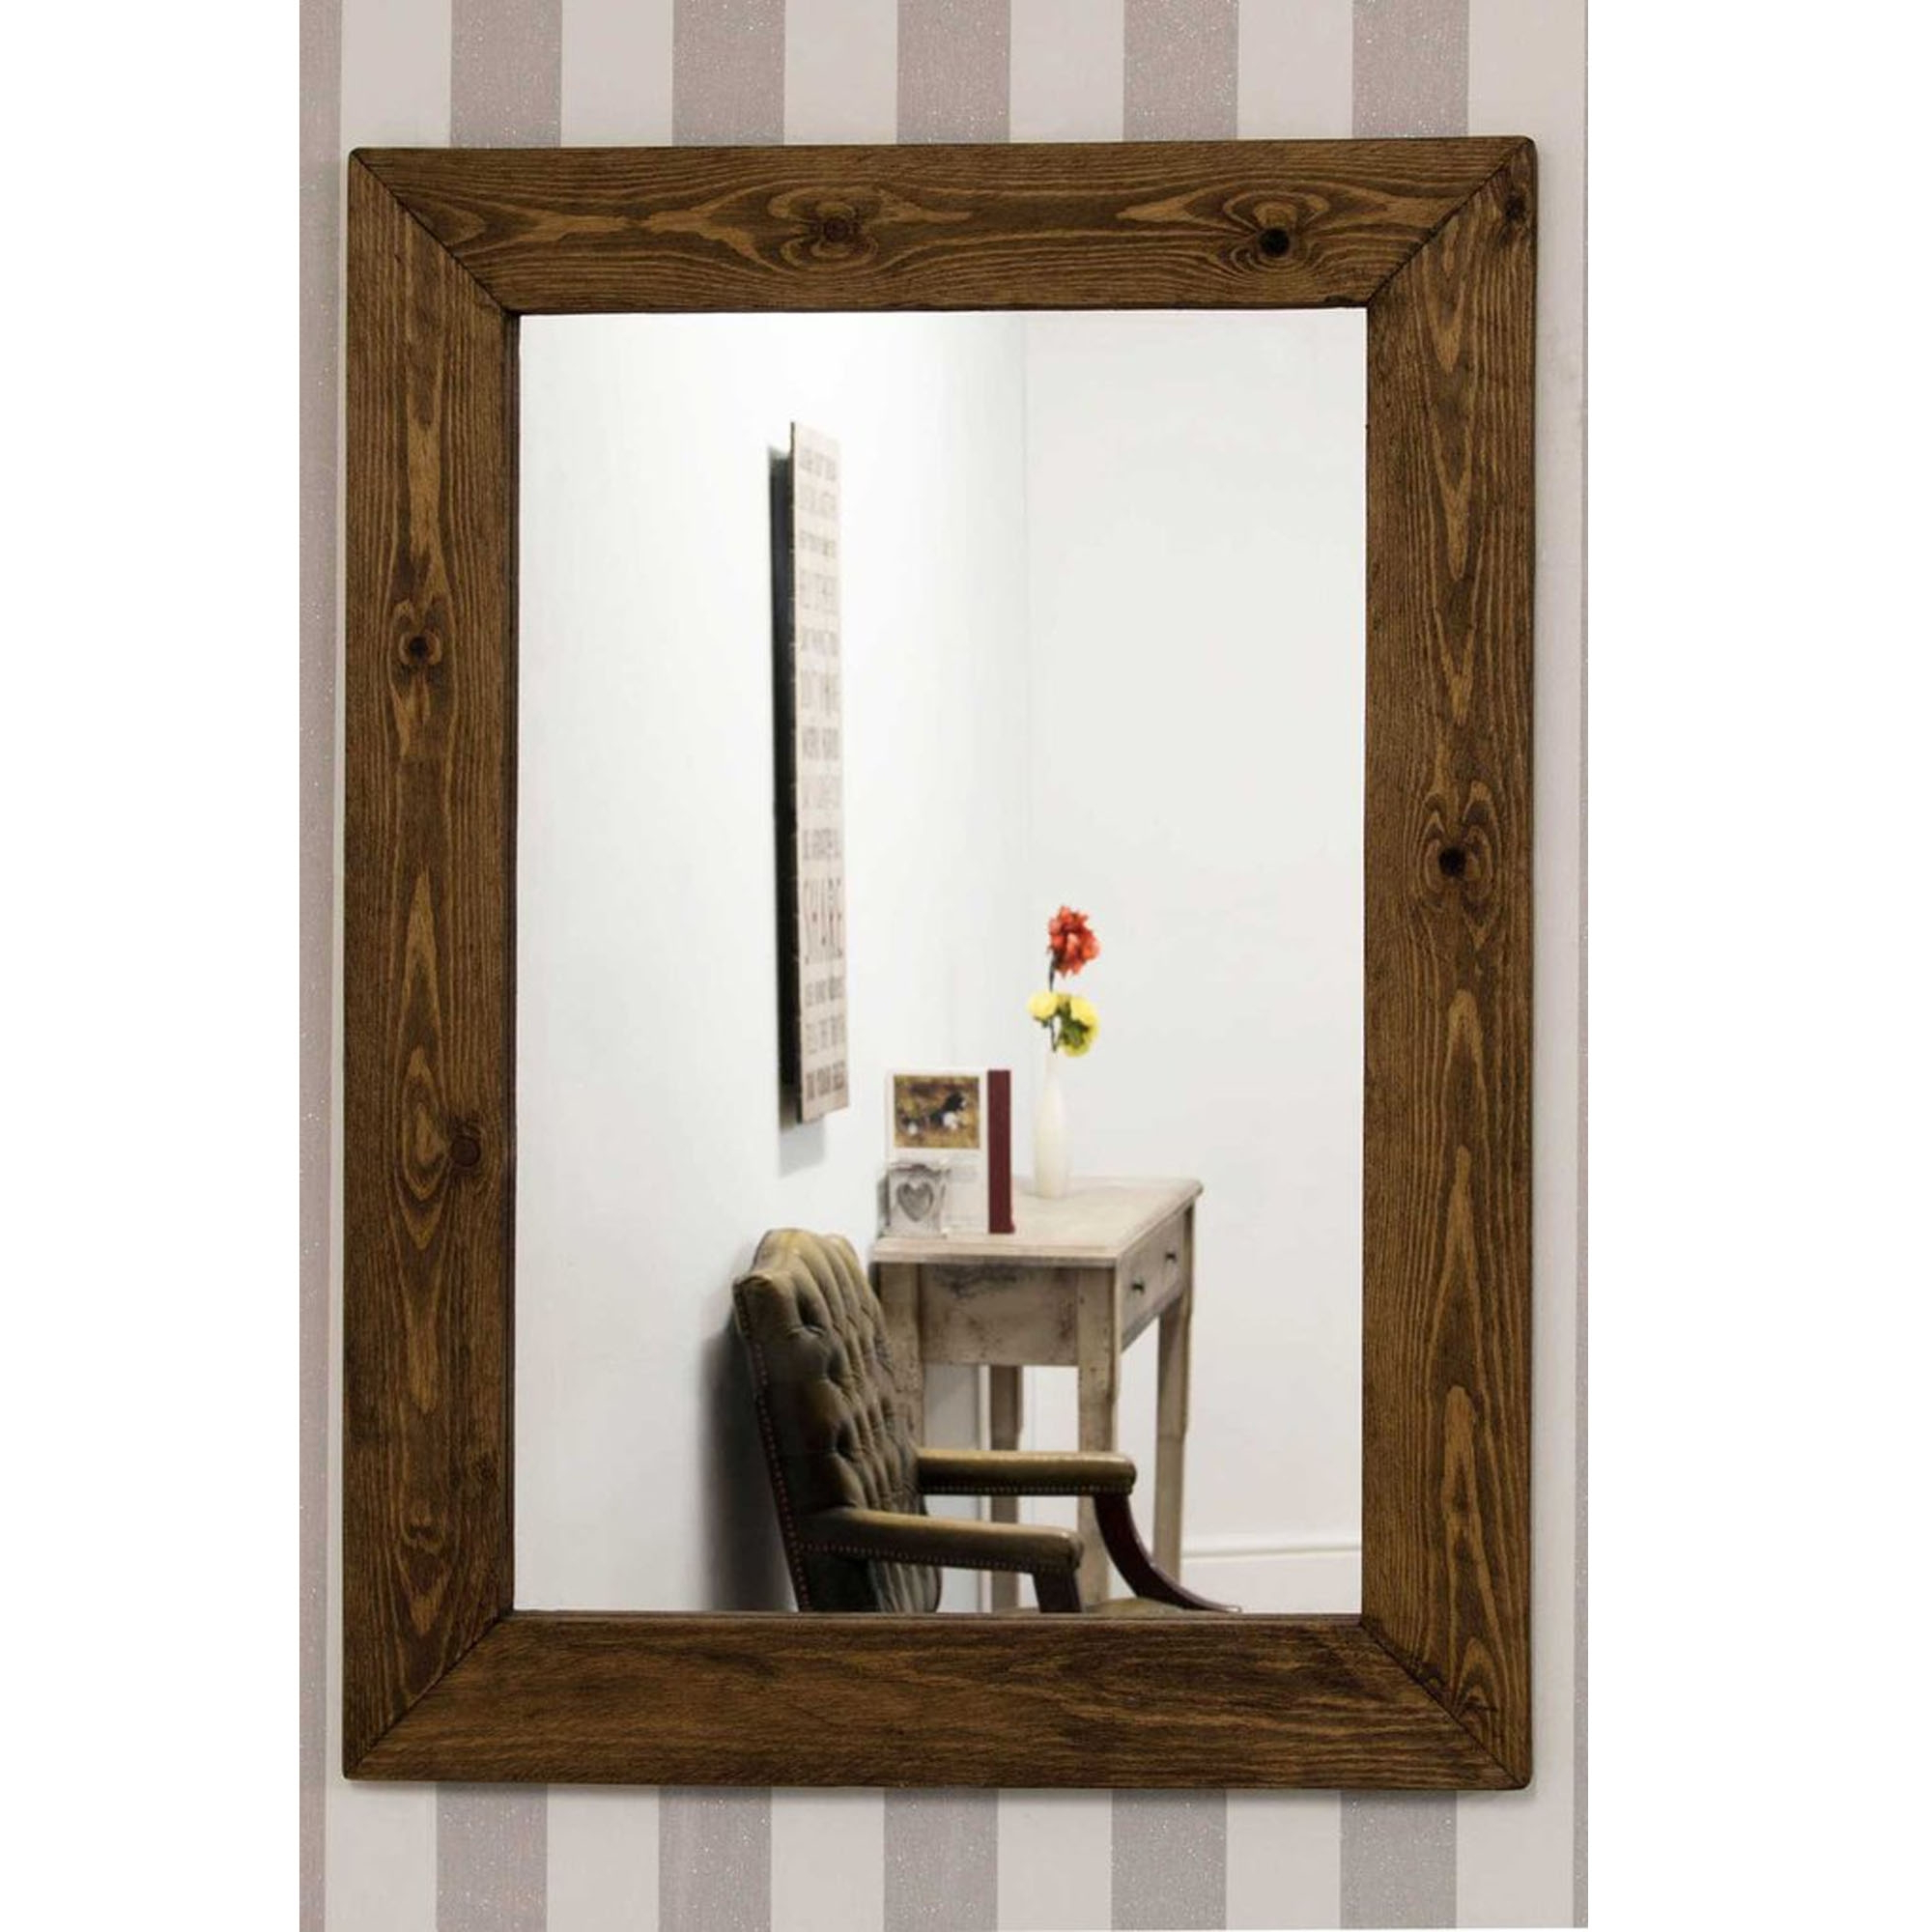 Rustic Wall Mirrors Regarding Well Known Small Rustic Country House Rectangular Wall Mirror (View 14 of 20)